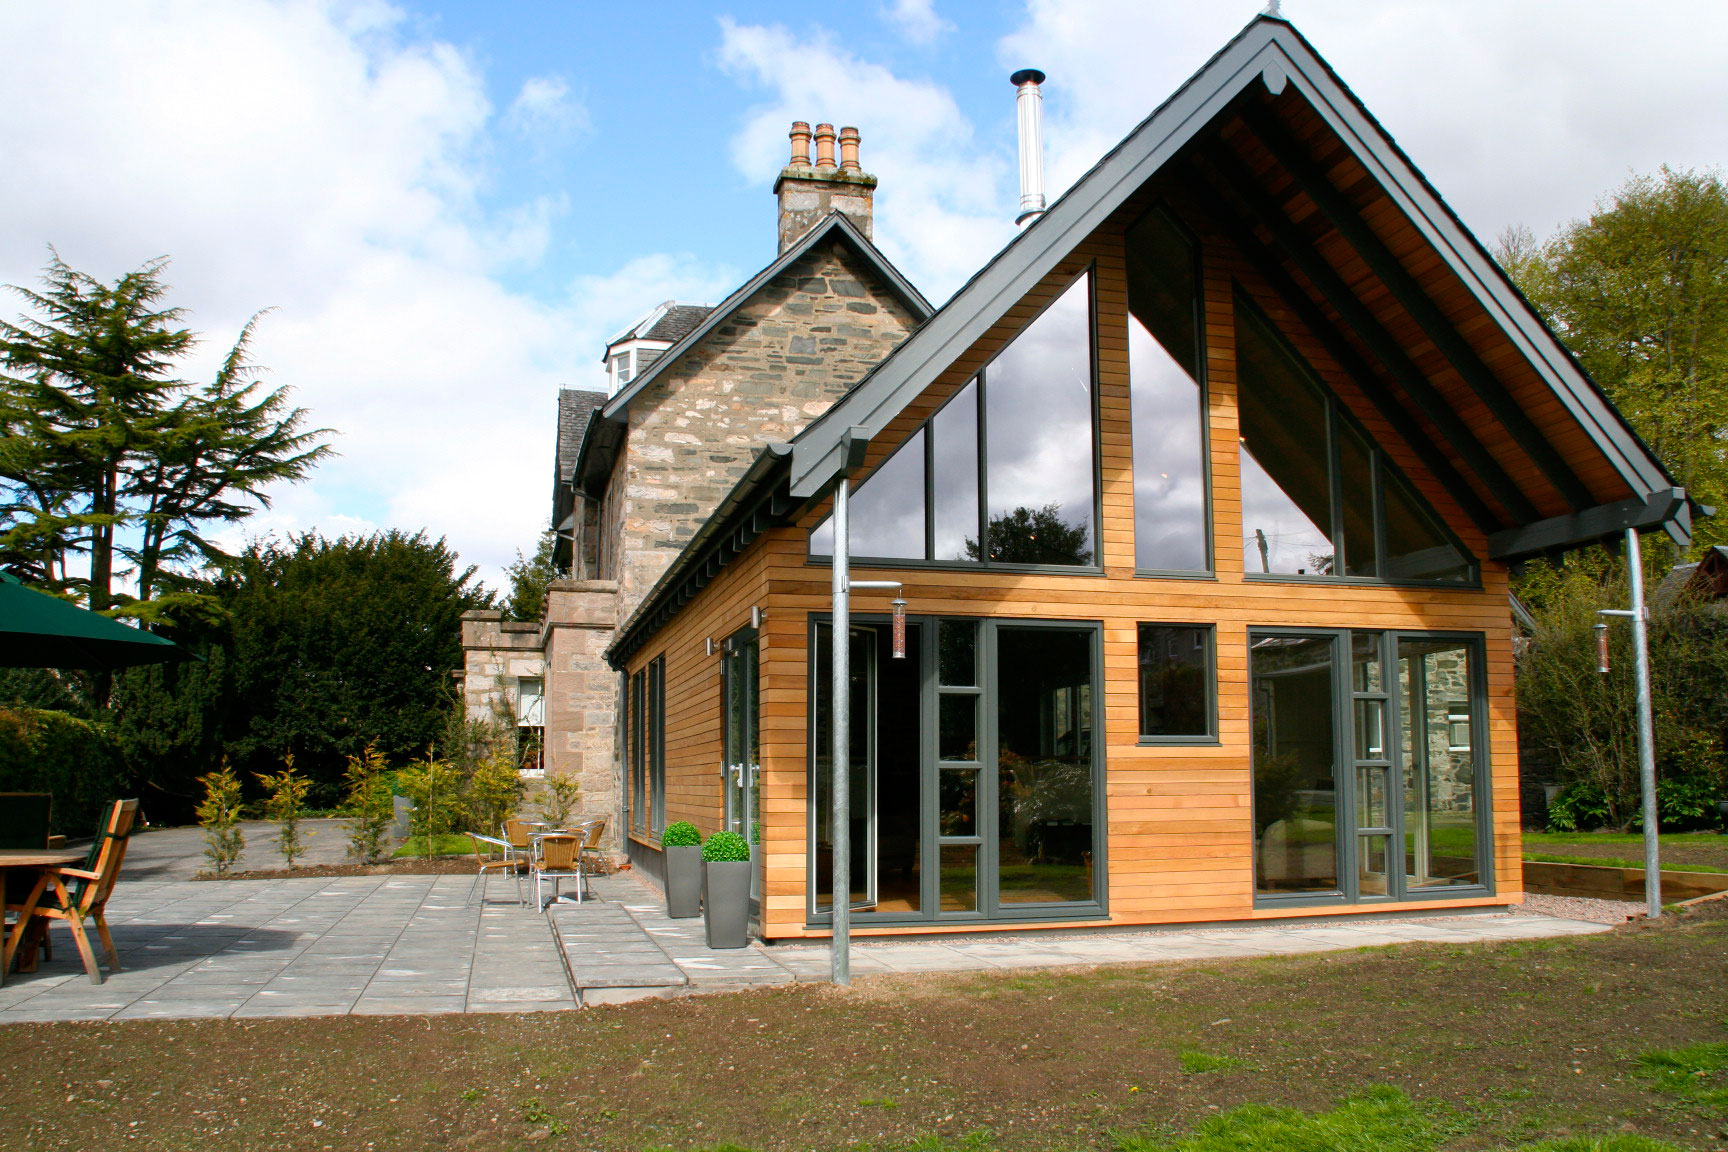 Architectural Design in Scotland